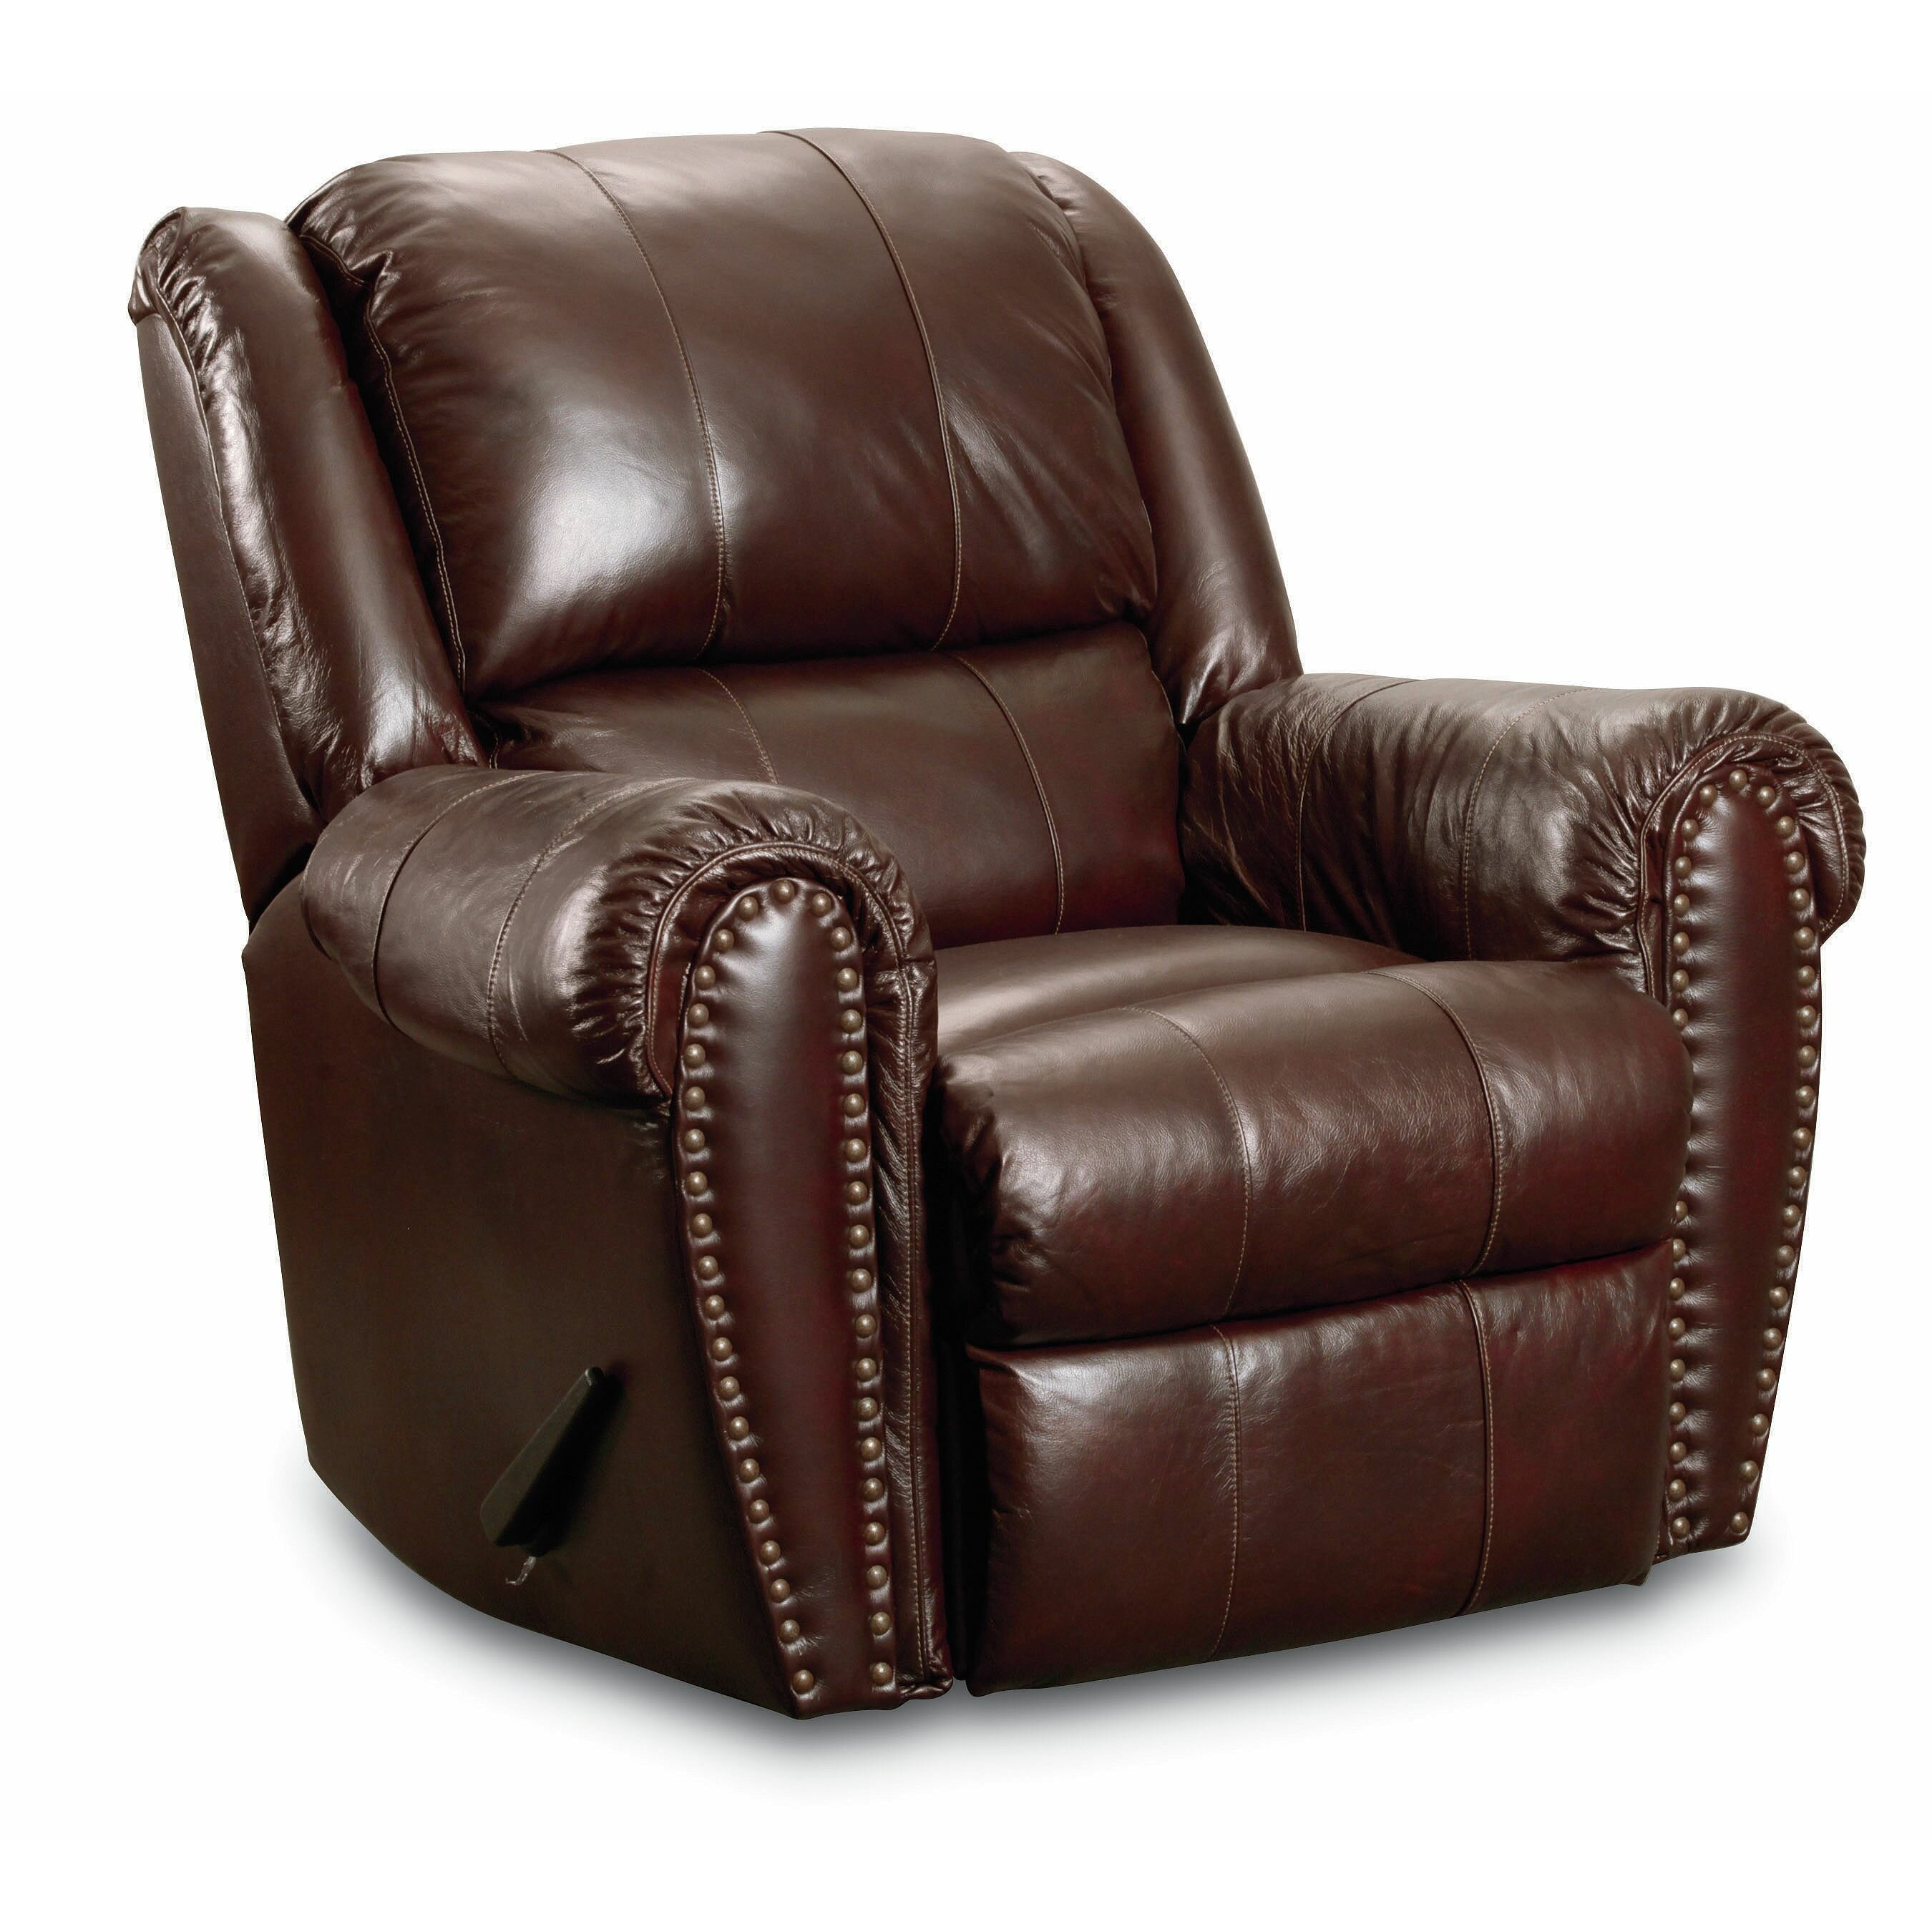 Lane furniture summerlin power glider recliner wayfair for Lane furniture